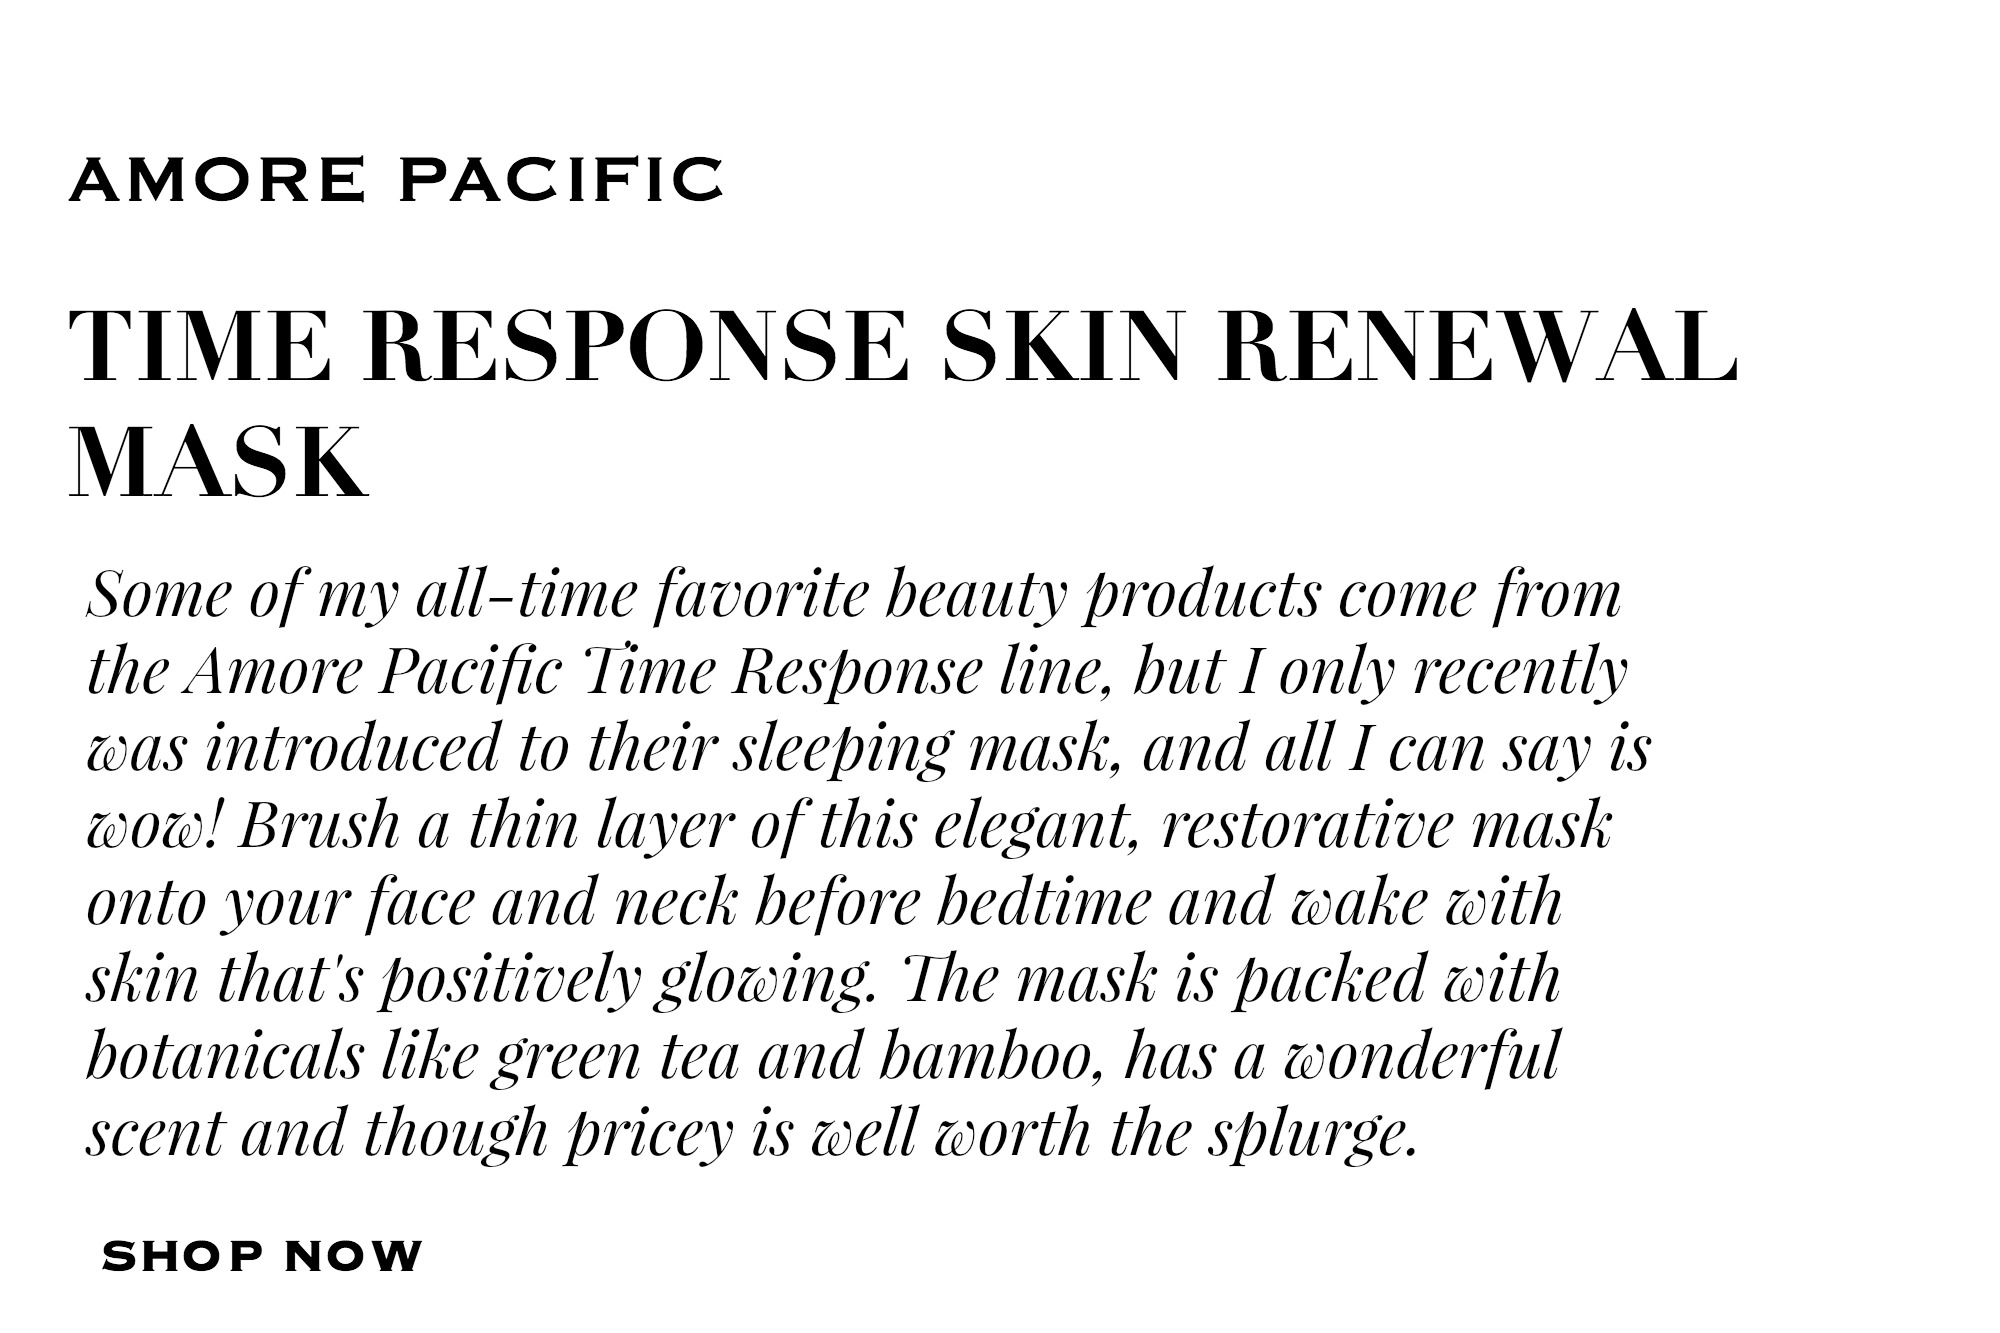 AMORE PACIFIC SKIN RENEWAL MASK